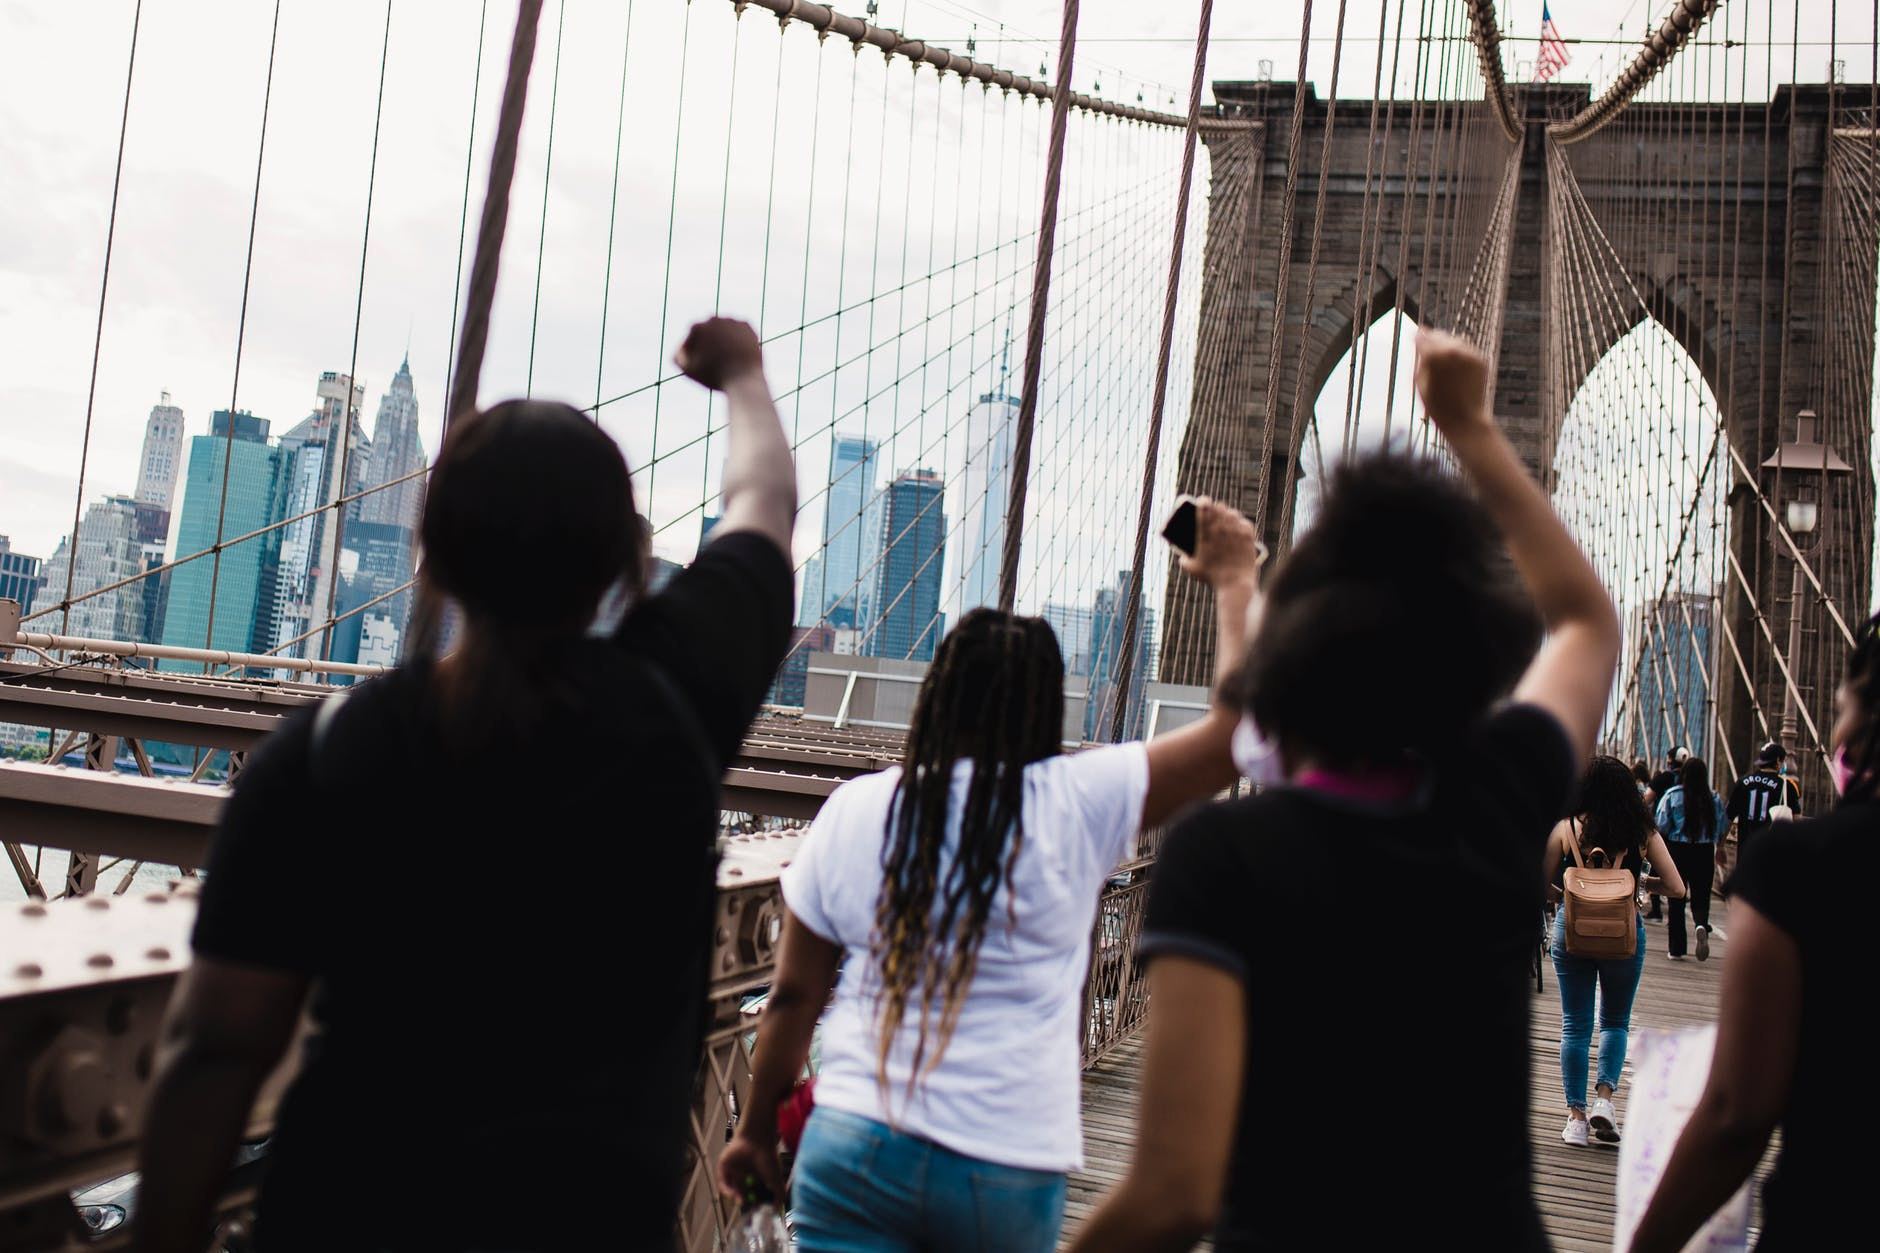 photograph of Black activists from behind with their fists raised as they march across the Brooklyn Bridge